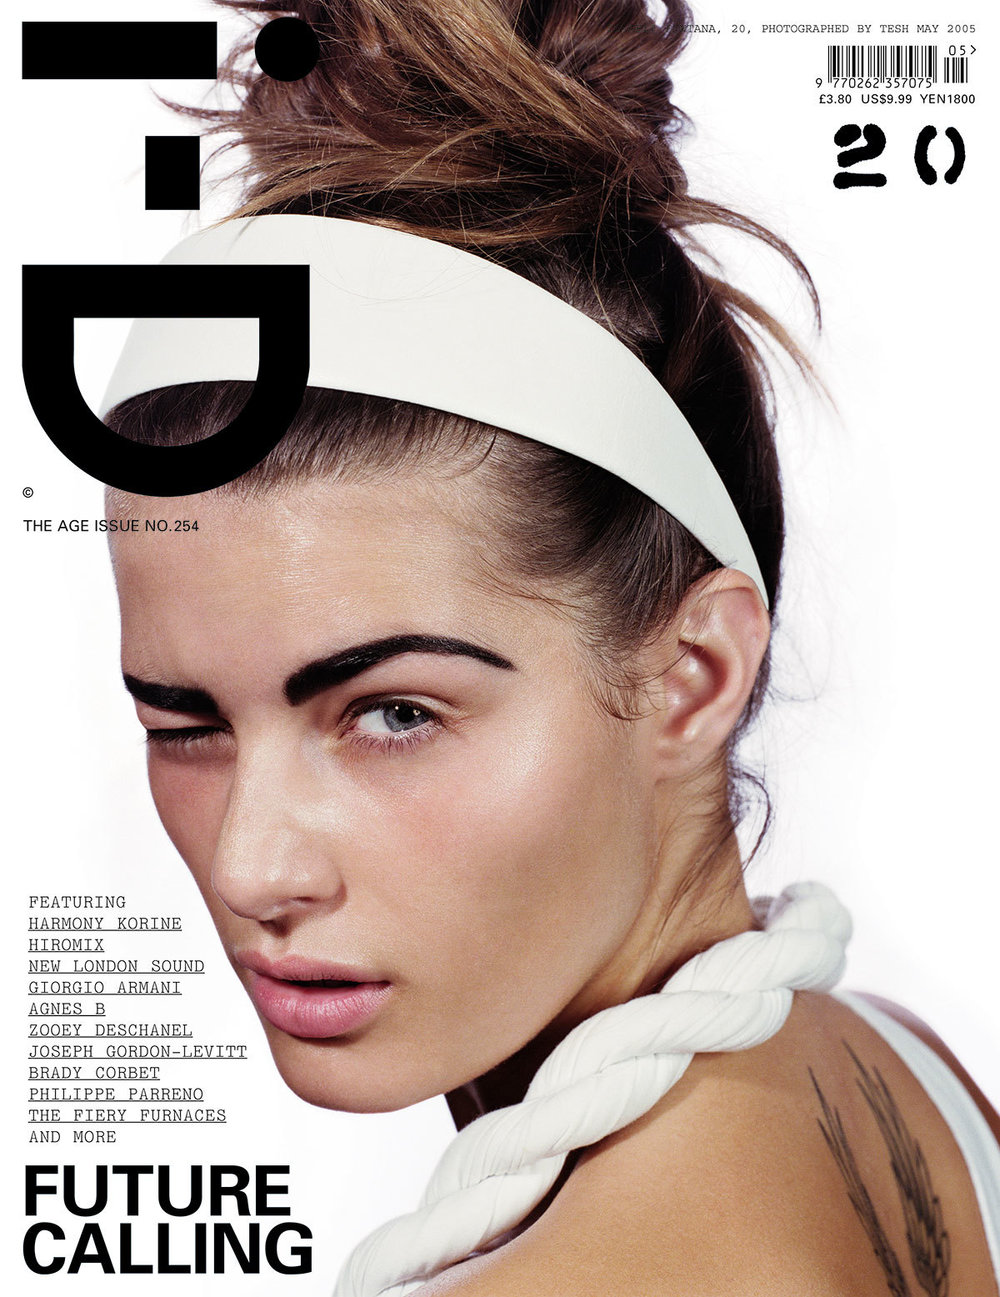 edward-enninfuls-most-i-conic-i-d-covers-of-the-00s-body-image-1417195890.jpg